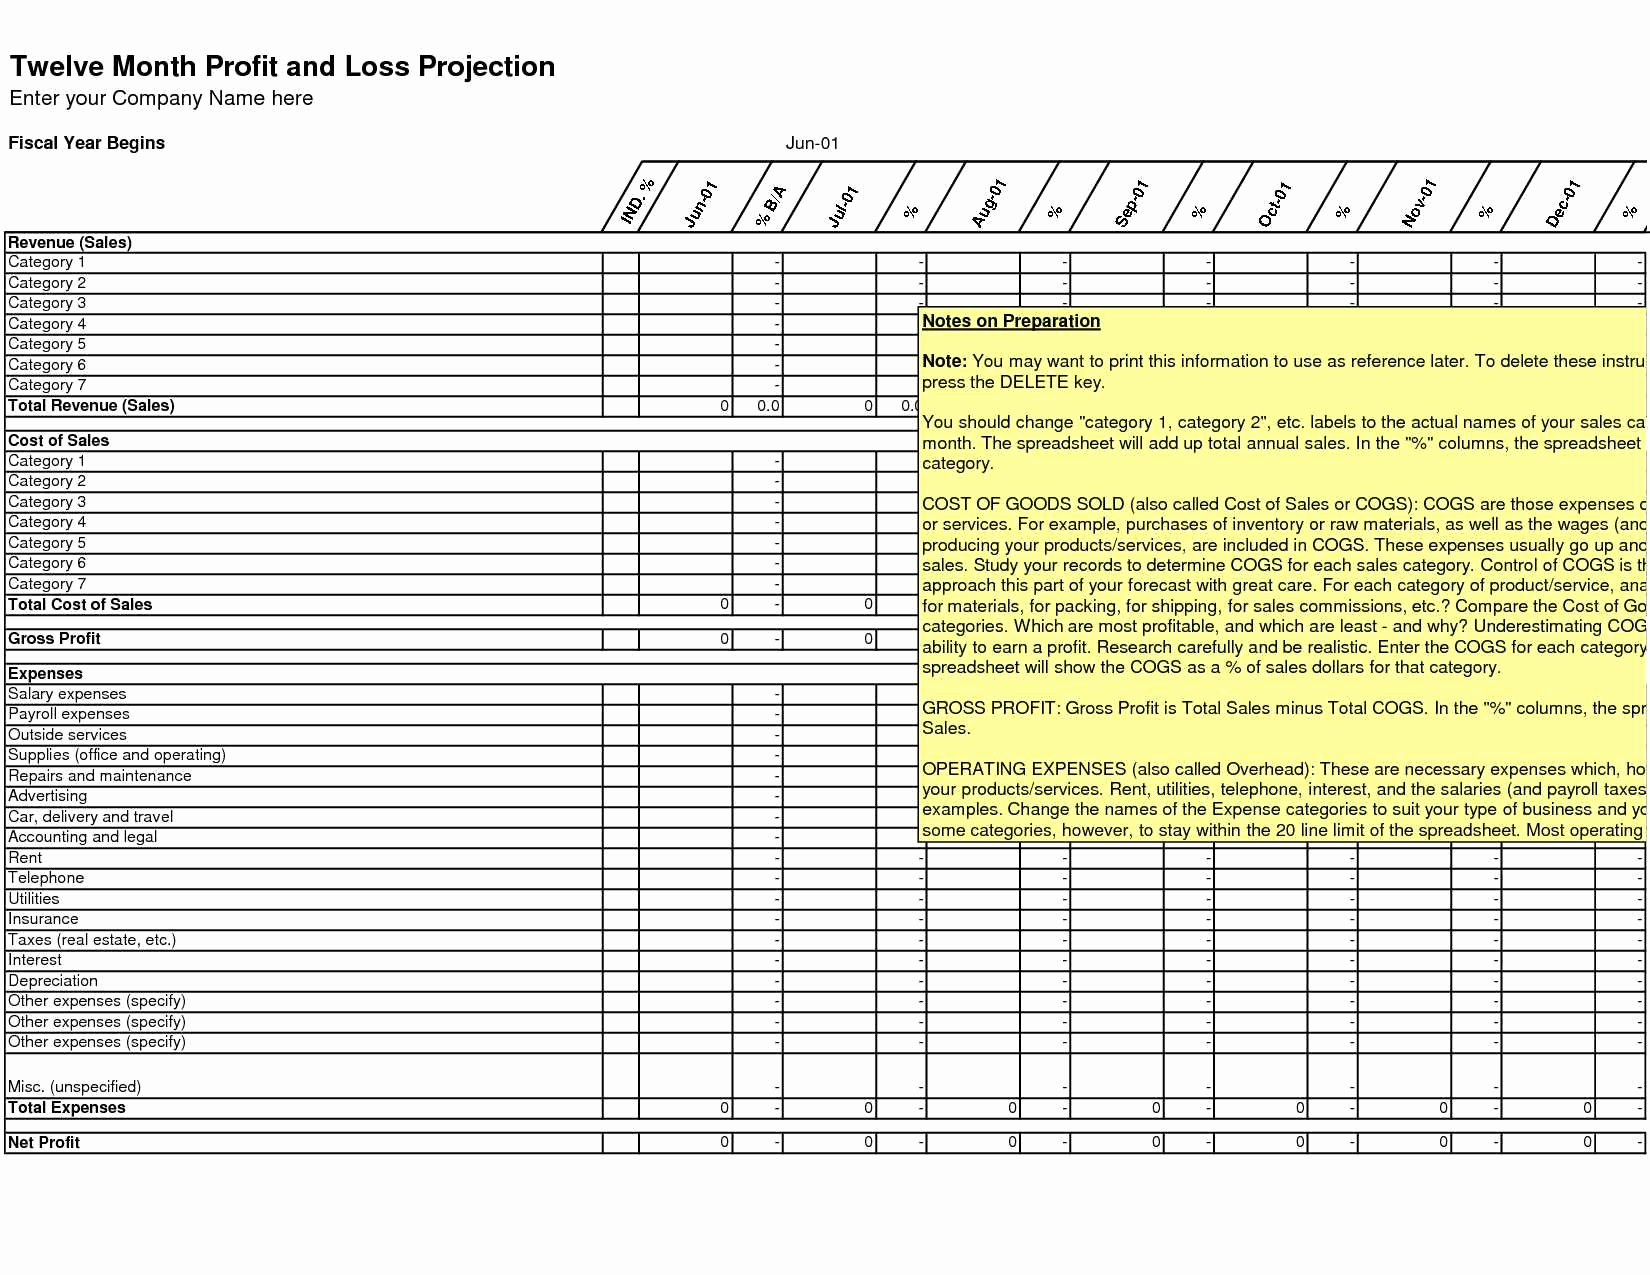 Payroll Forecasting Spreadsheet Inside Hotel Budgeting And Forecasting Template  Resourcesaver